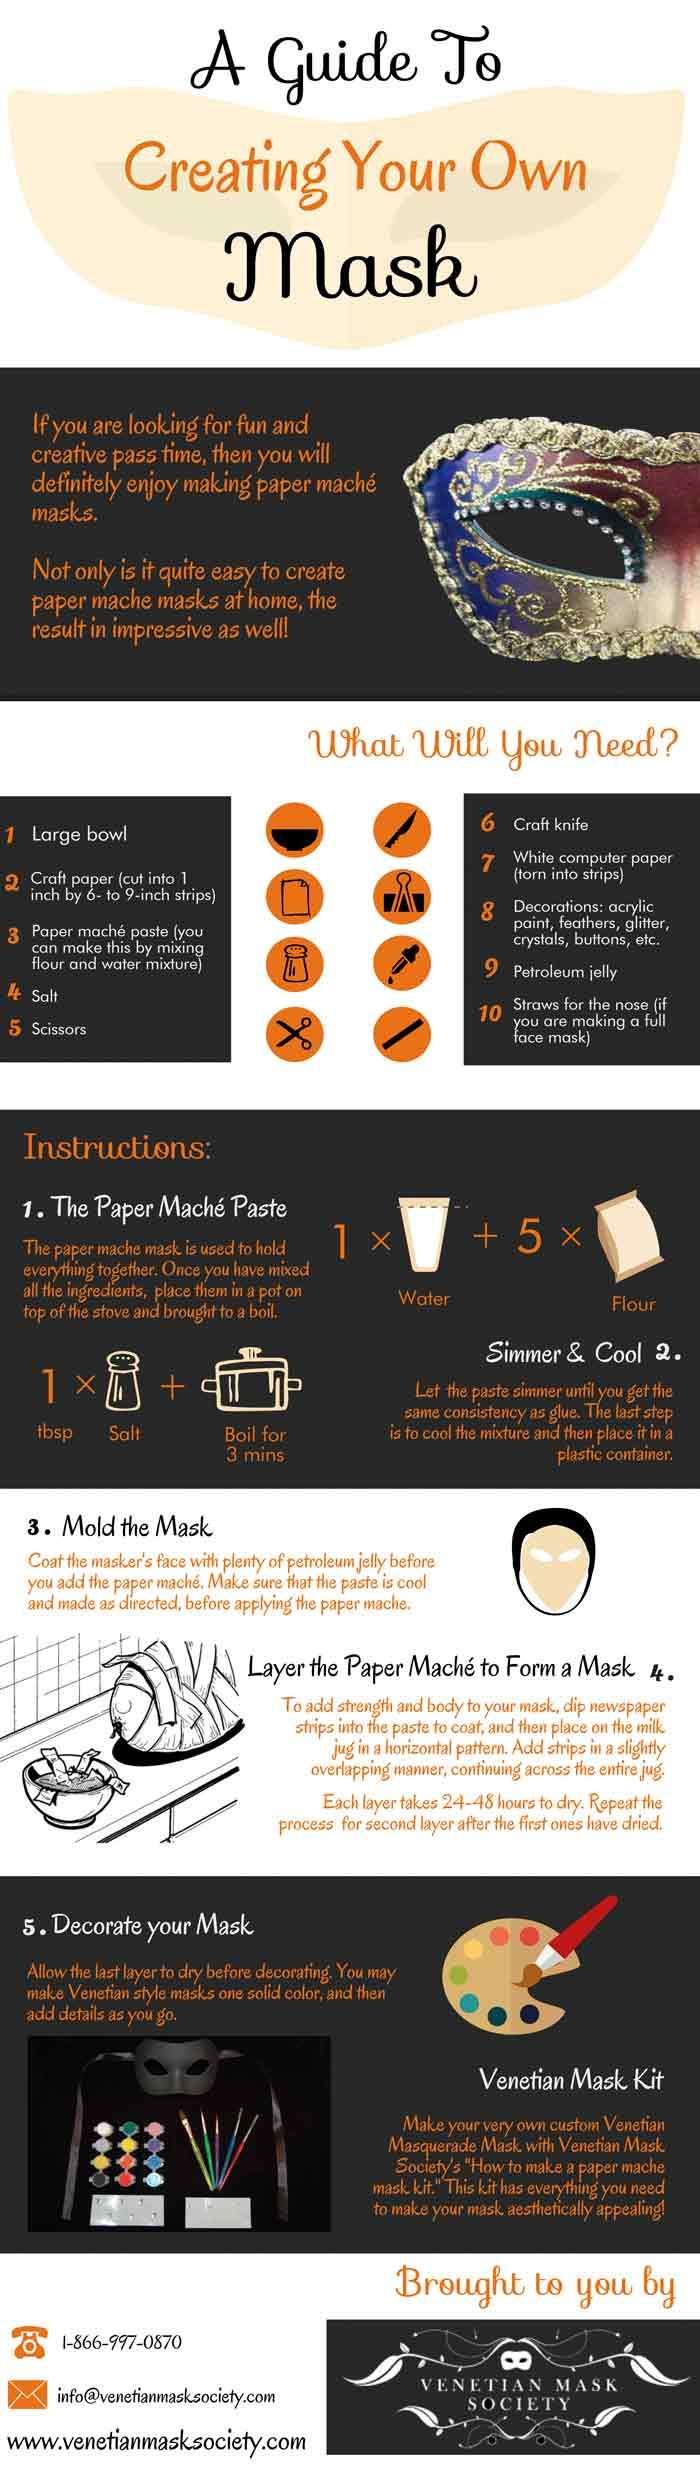 17 Best images about Halloween and masquerade on Pinterest | Horns ...